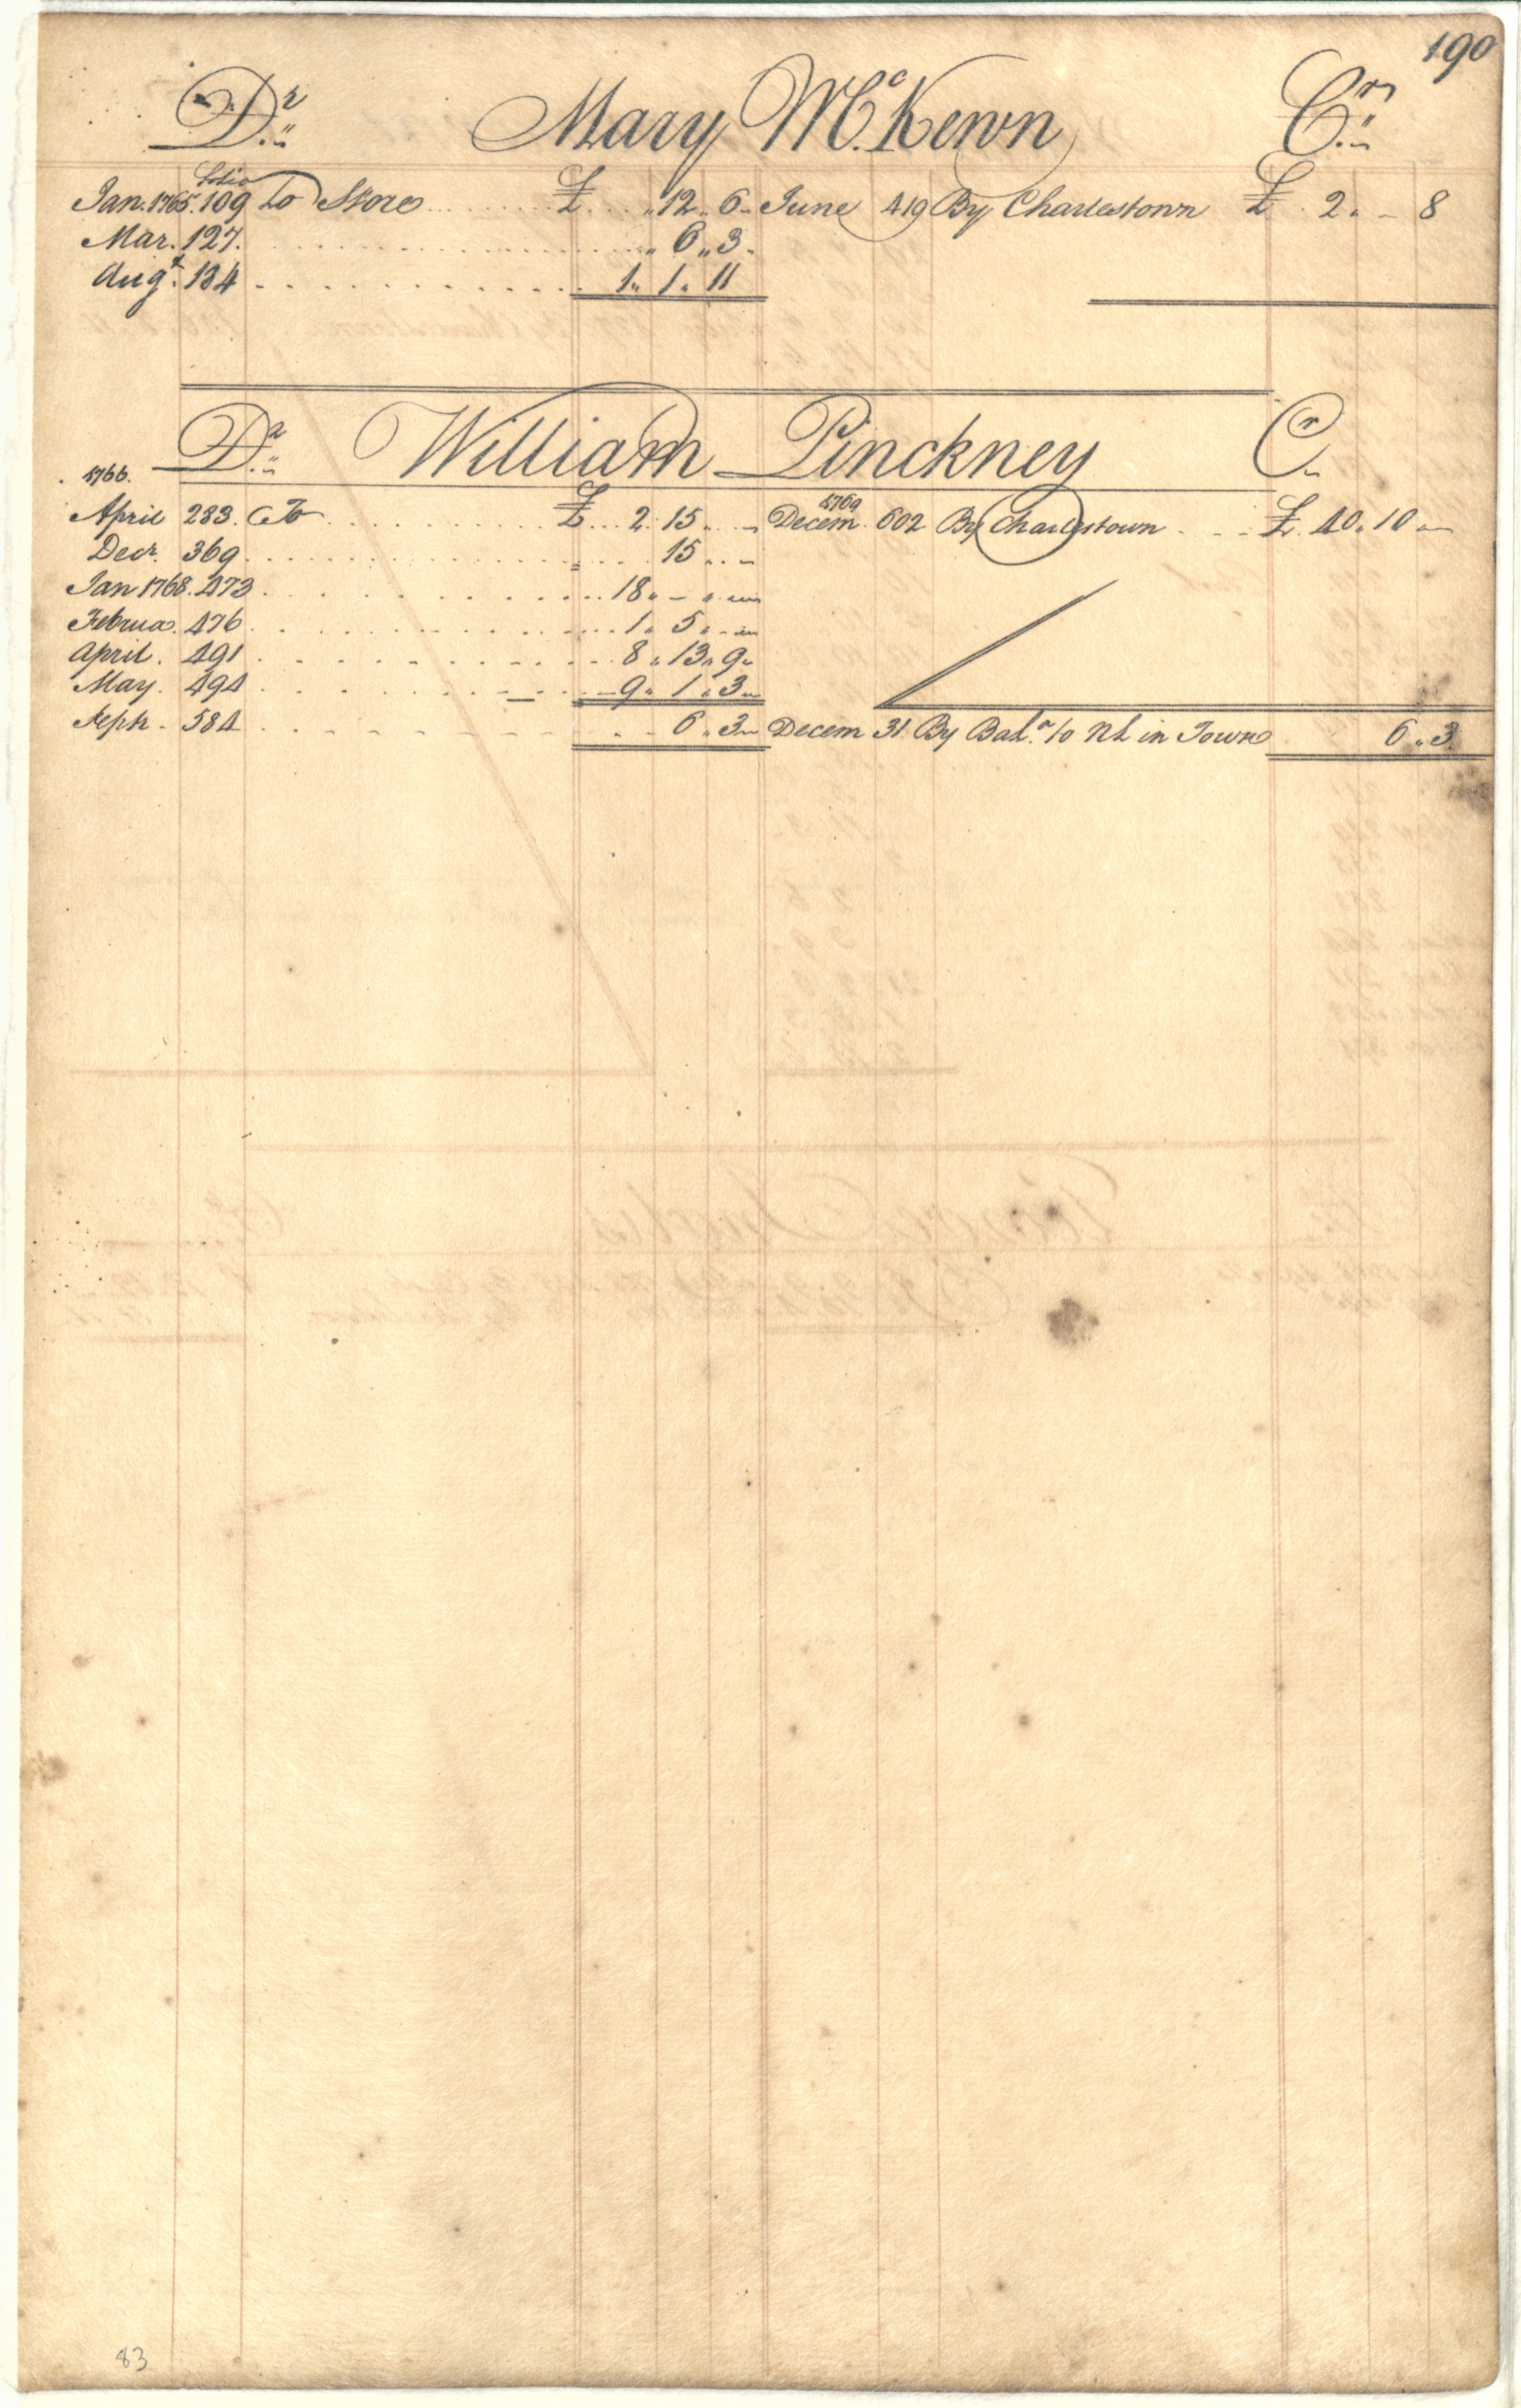 Plowden Weston's Business Ledger, page 190